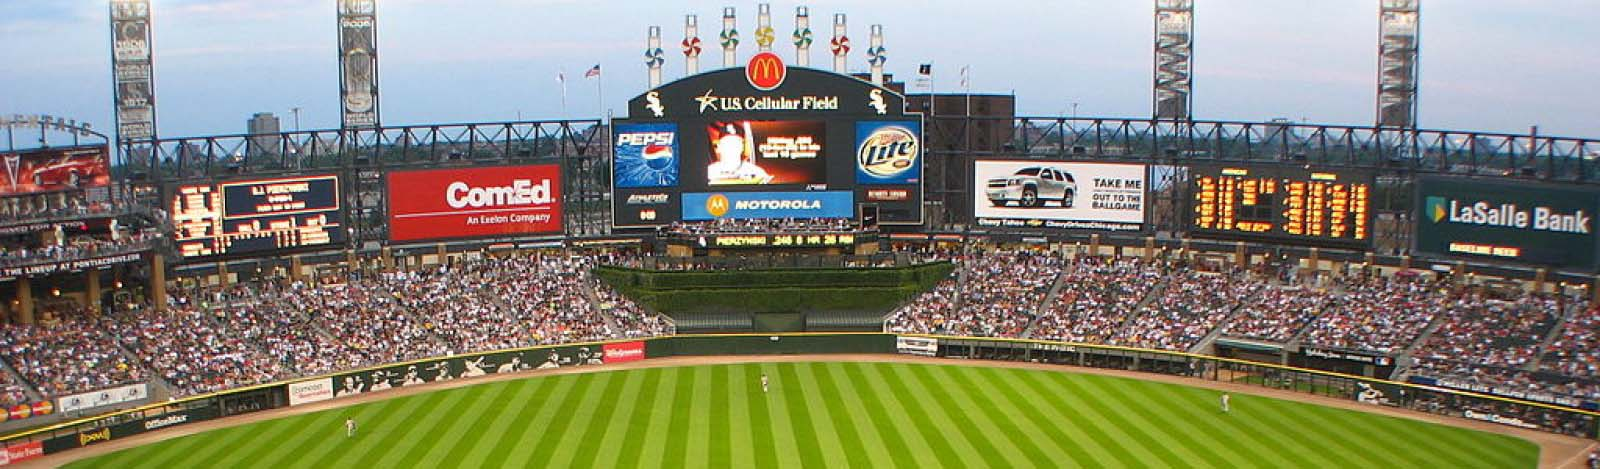 chicago, us cellular field